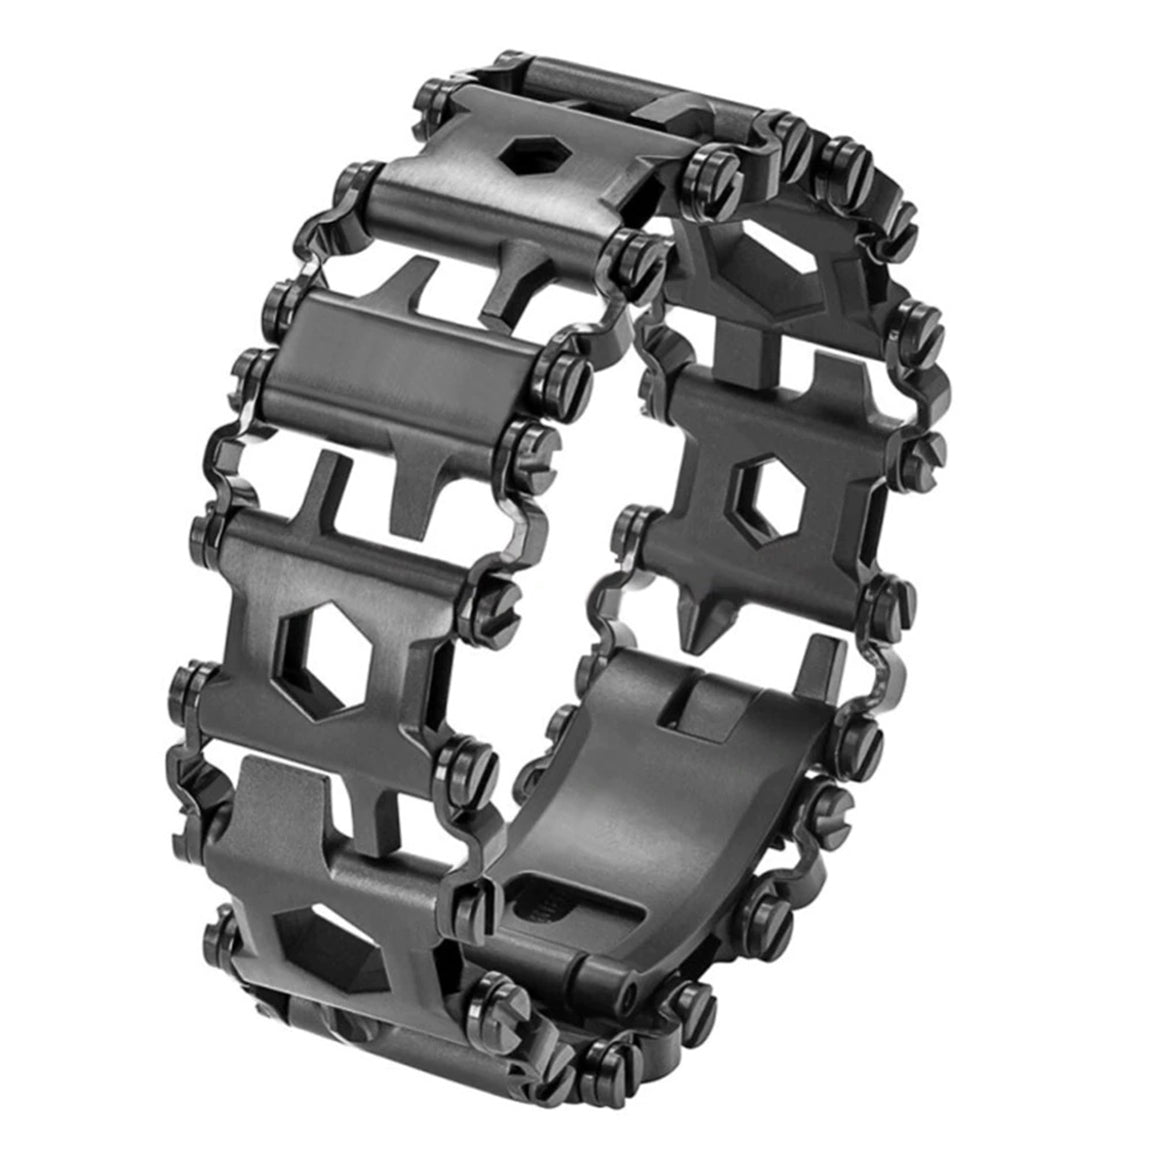 29 in 1 Multi-functional Tools Bracelet